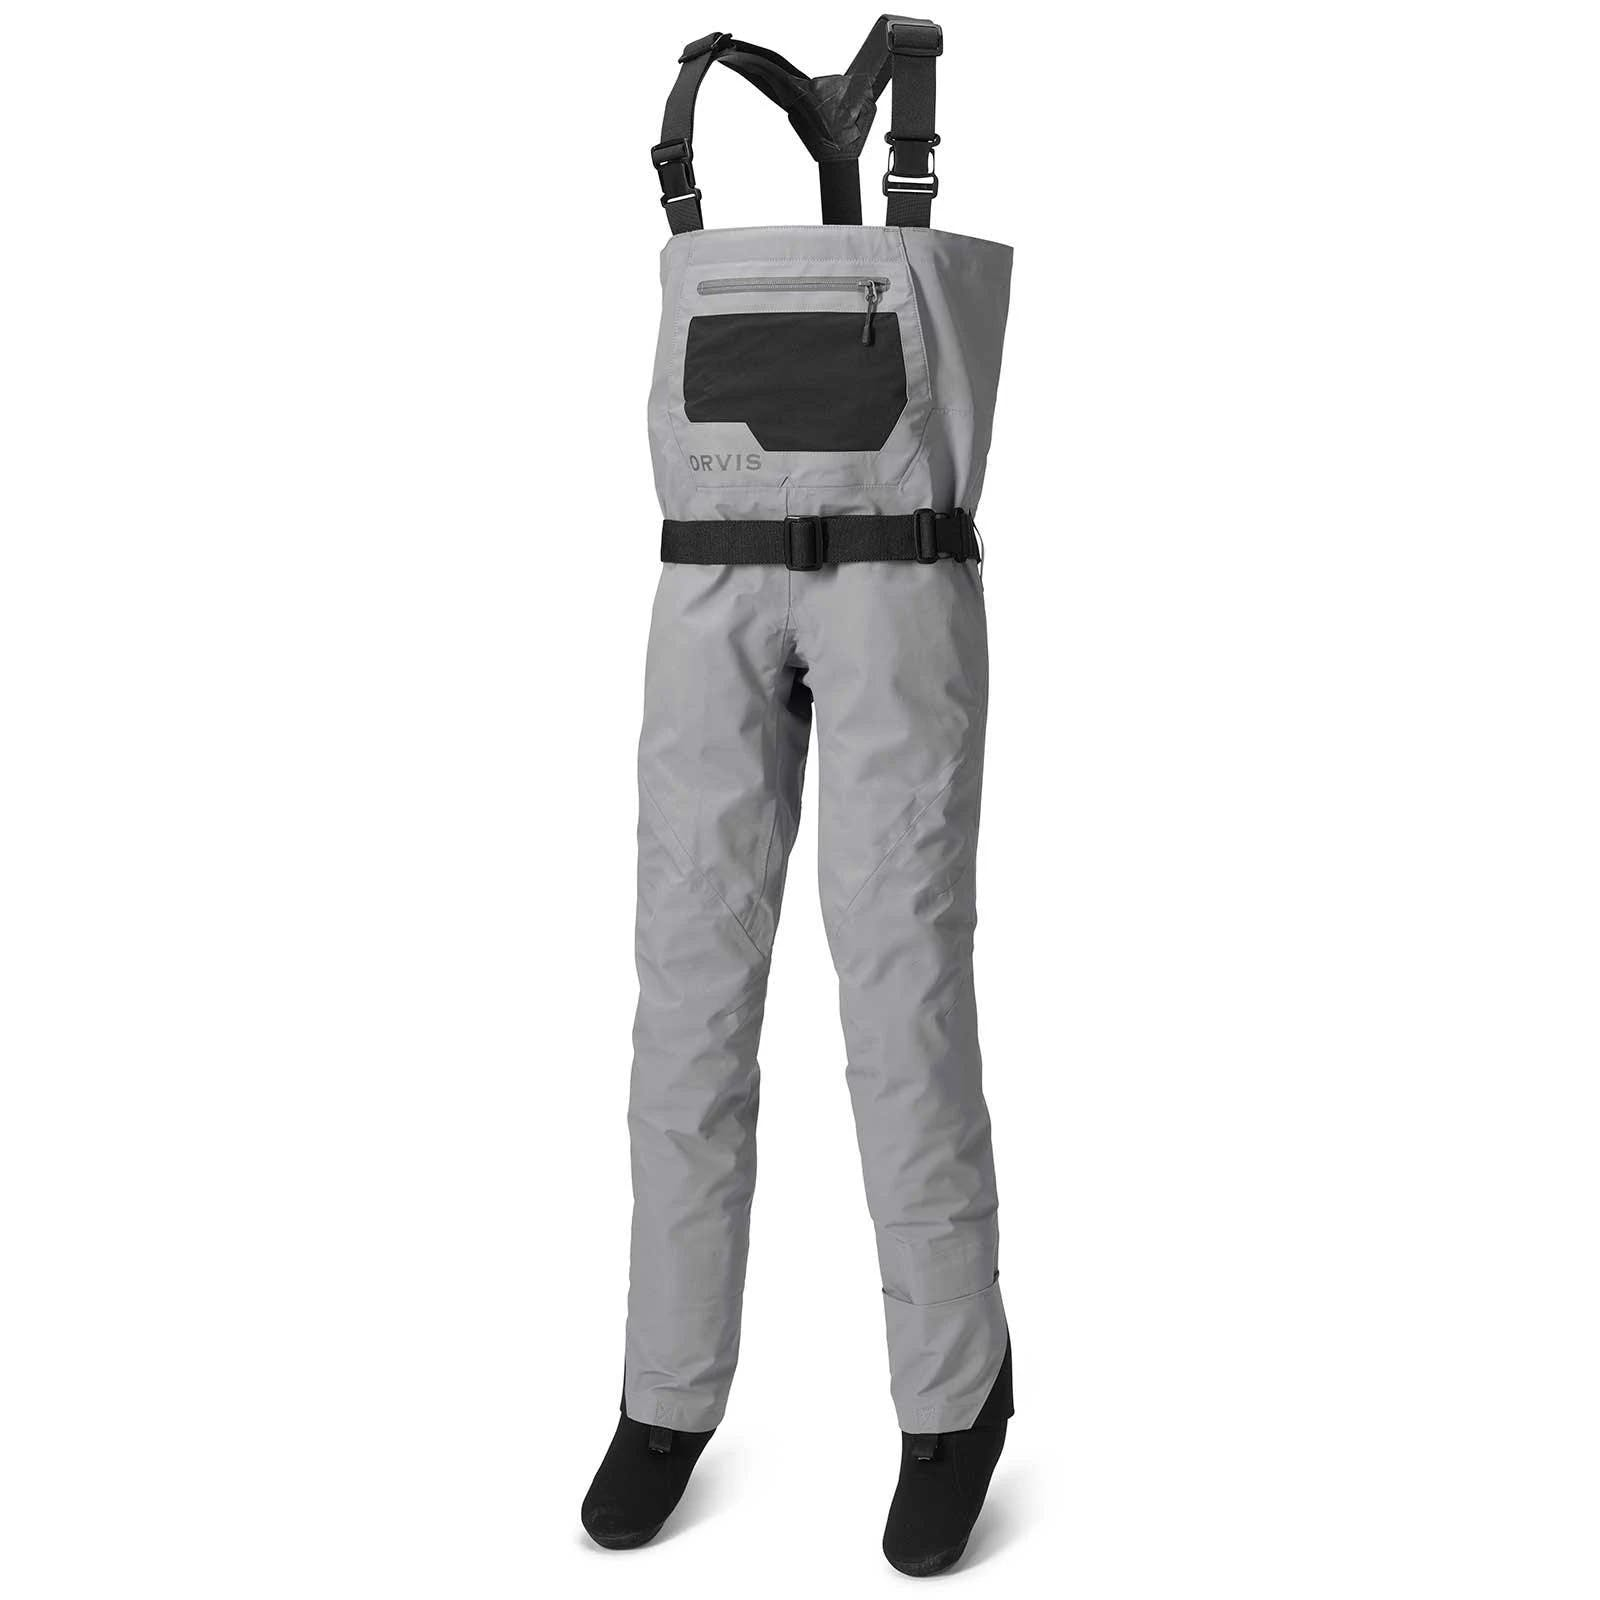 Orvis Men's Clearwater Fishing Wader | Size Regular Large